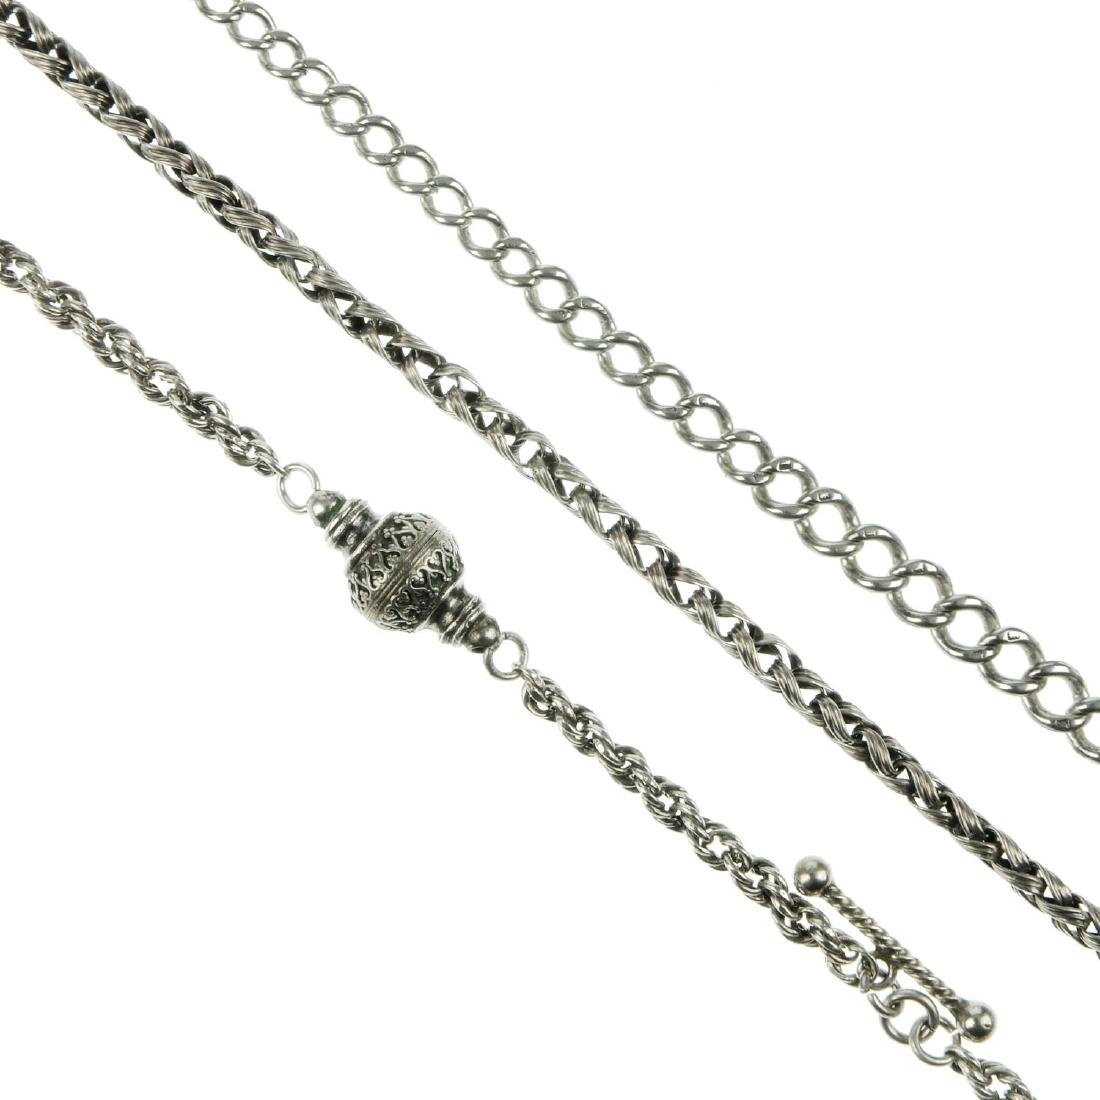 Five silver and white metal pocket watch chains and